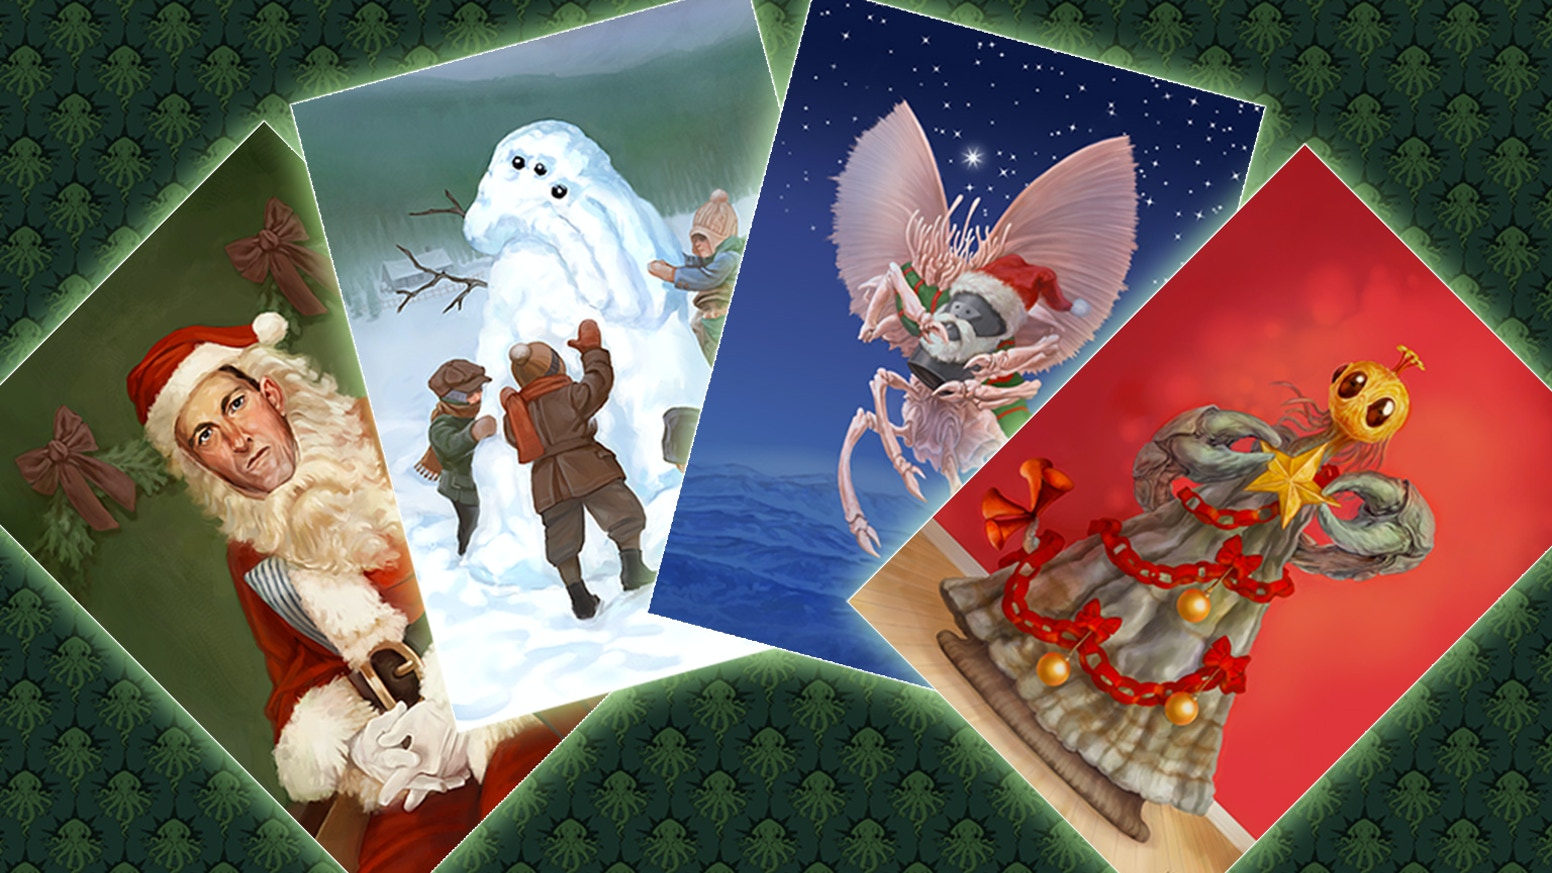 Put a little more cosmic horror in your holidays with these 4 Lovecraft inspired Christmas cards. If you missed out on the cards, they will be available the link below after all the rewards have been sent out.